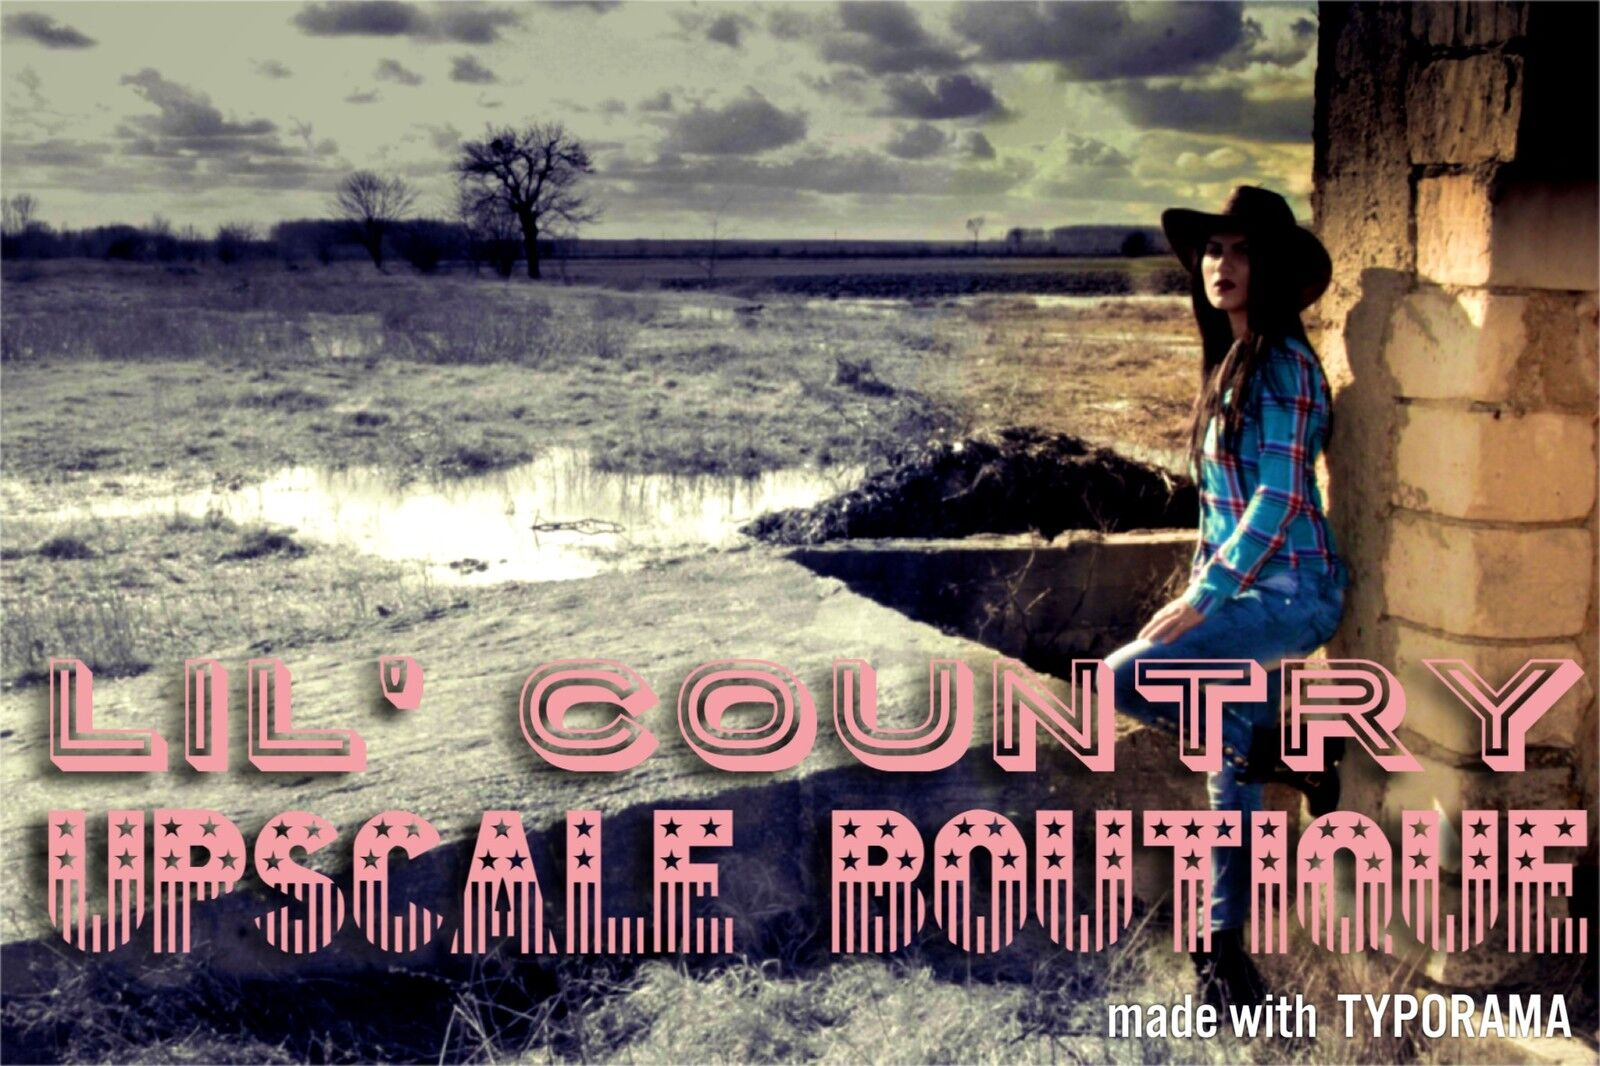 Lil Country Upscale Boutique